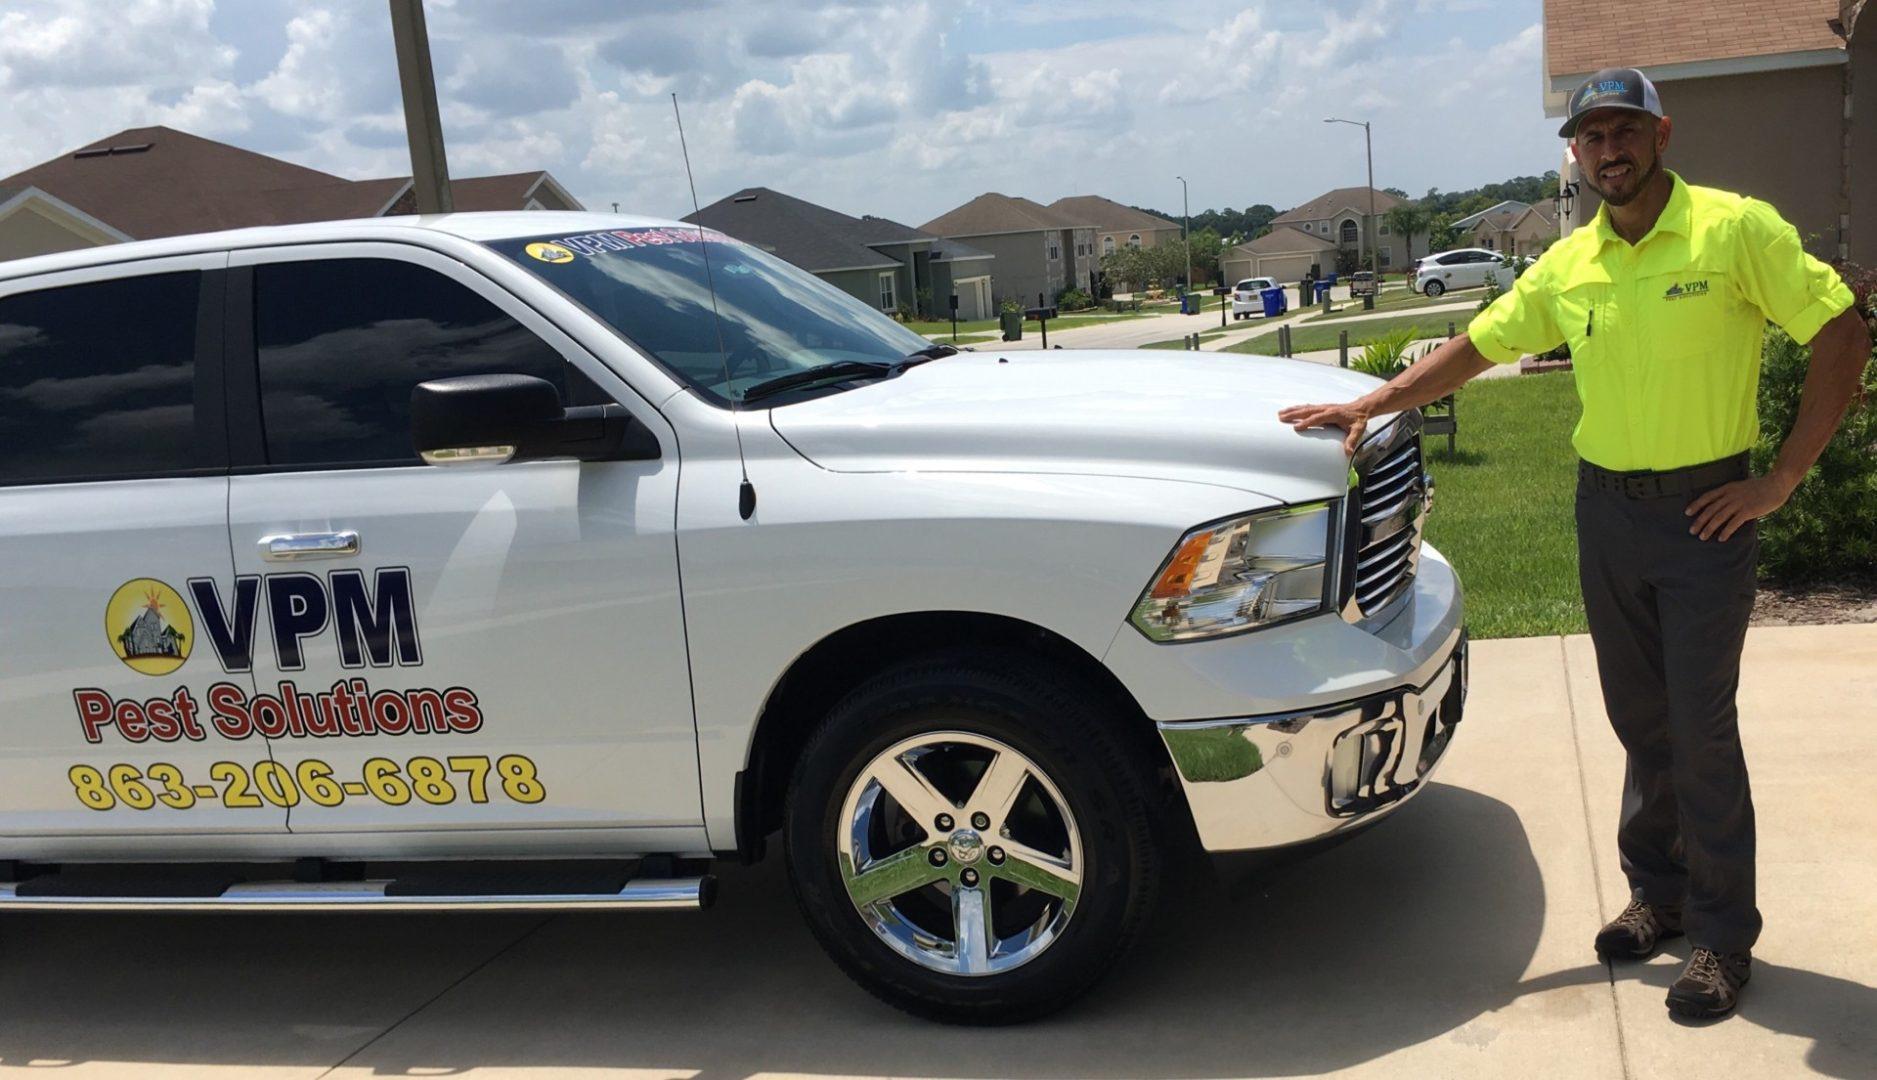 Pest control service in Polk County